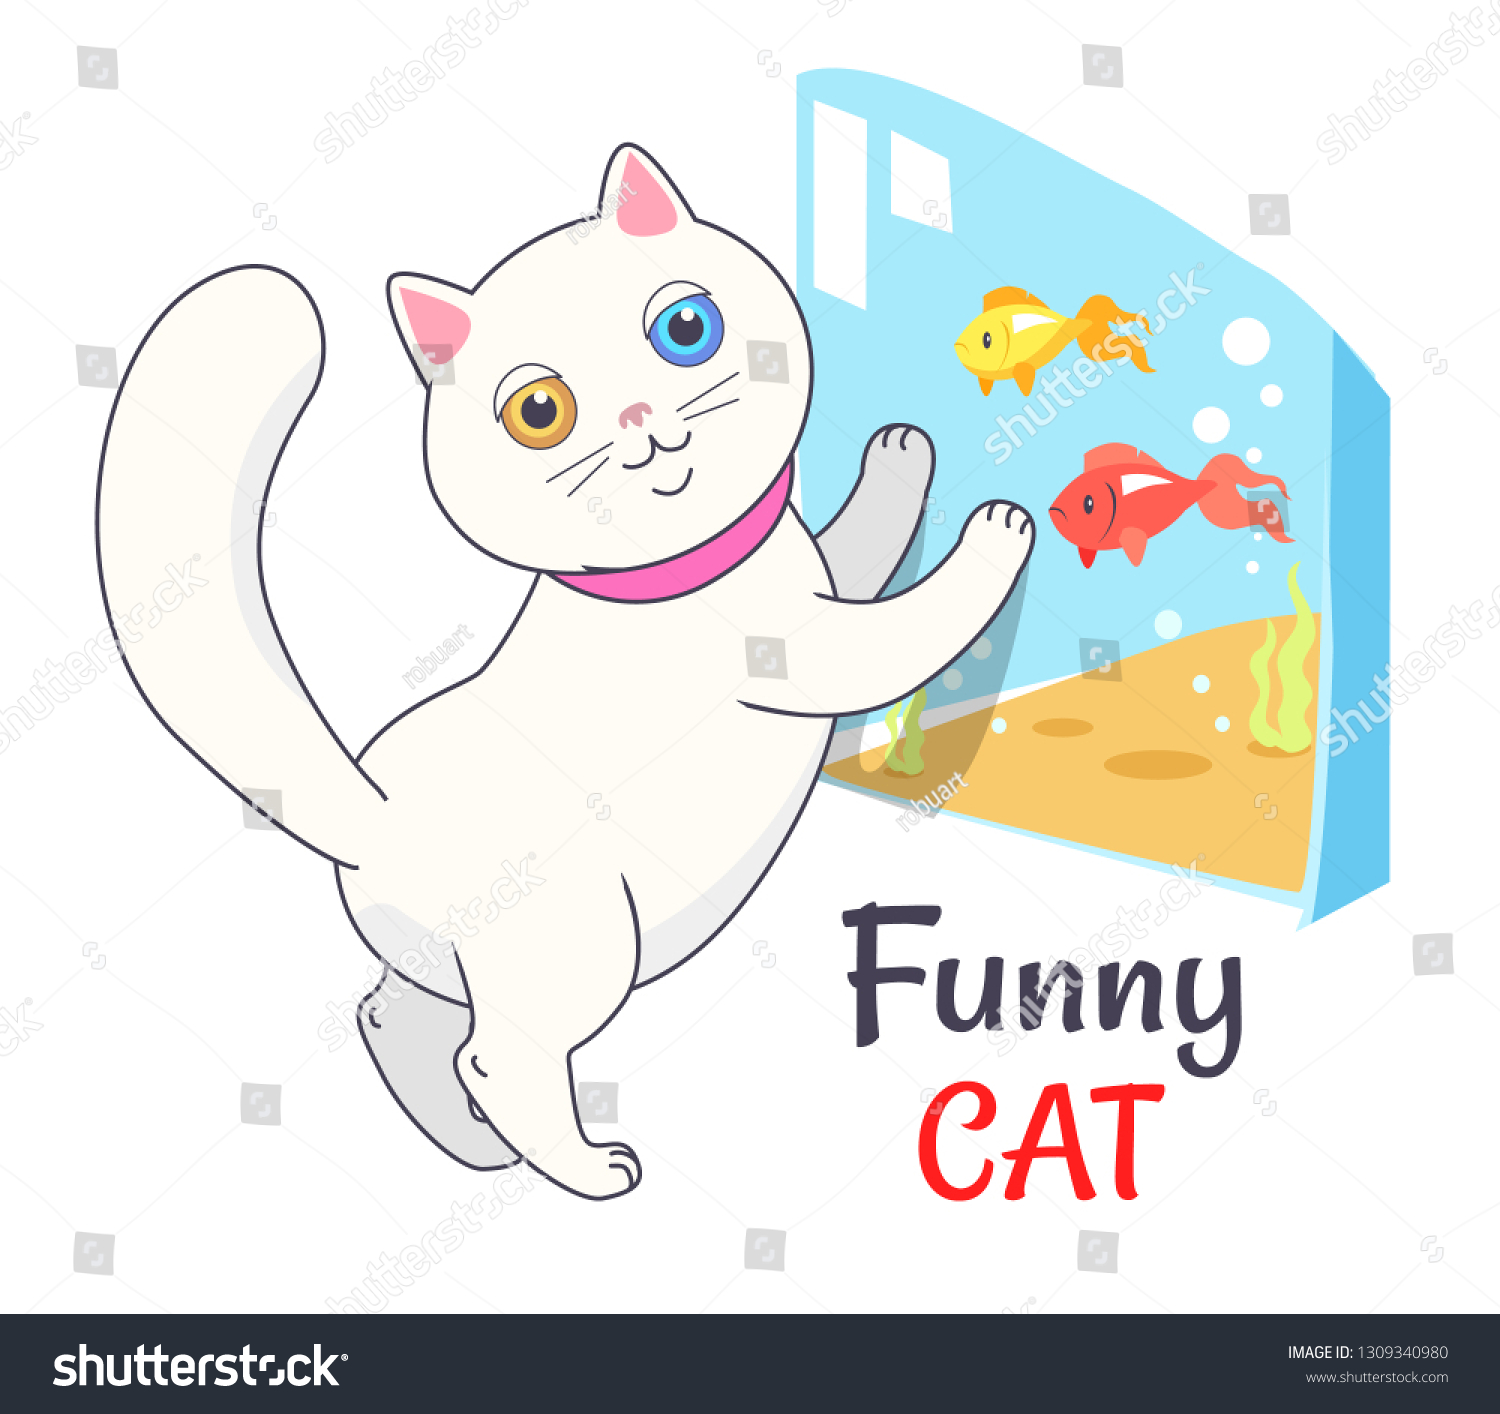 Funny white cat looking at aquarium with fish transparent tank with water and cute feline kitten in pink collar raster illustration isolated on light